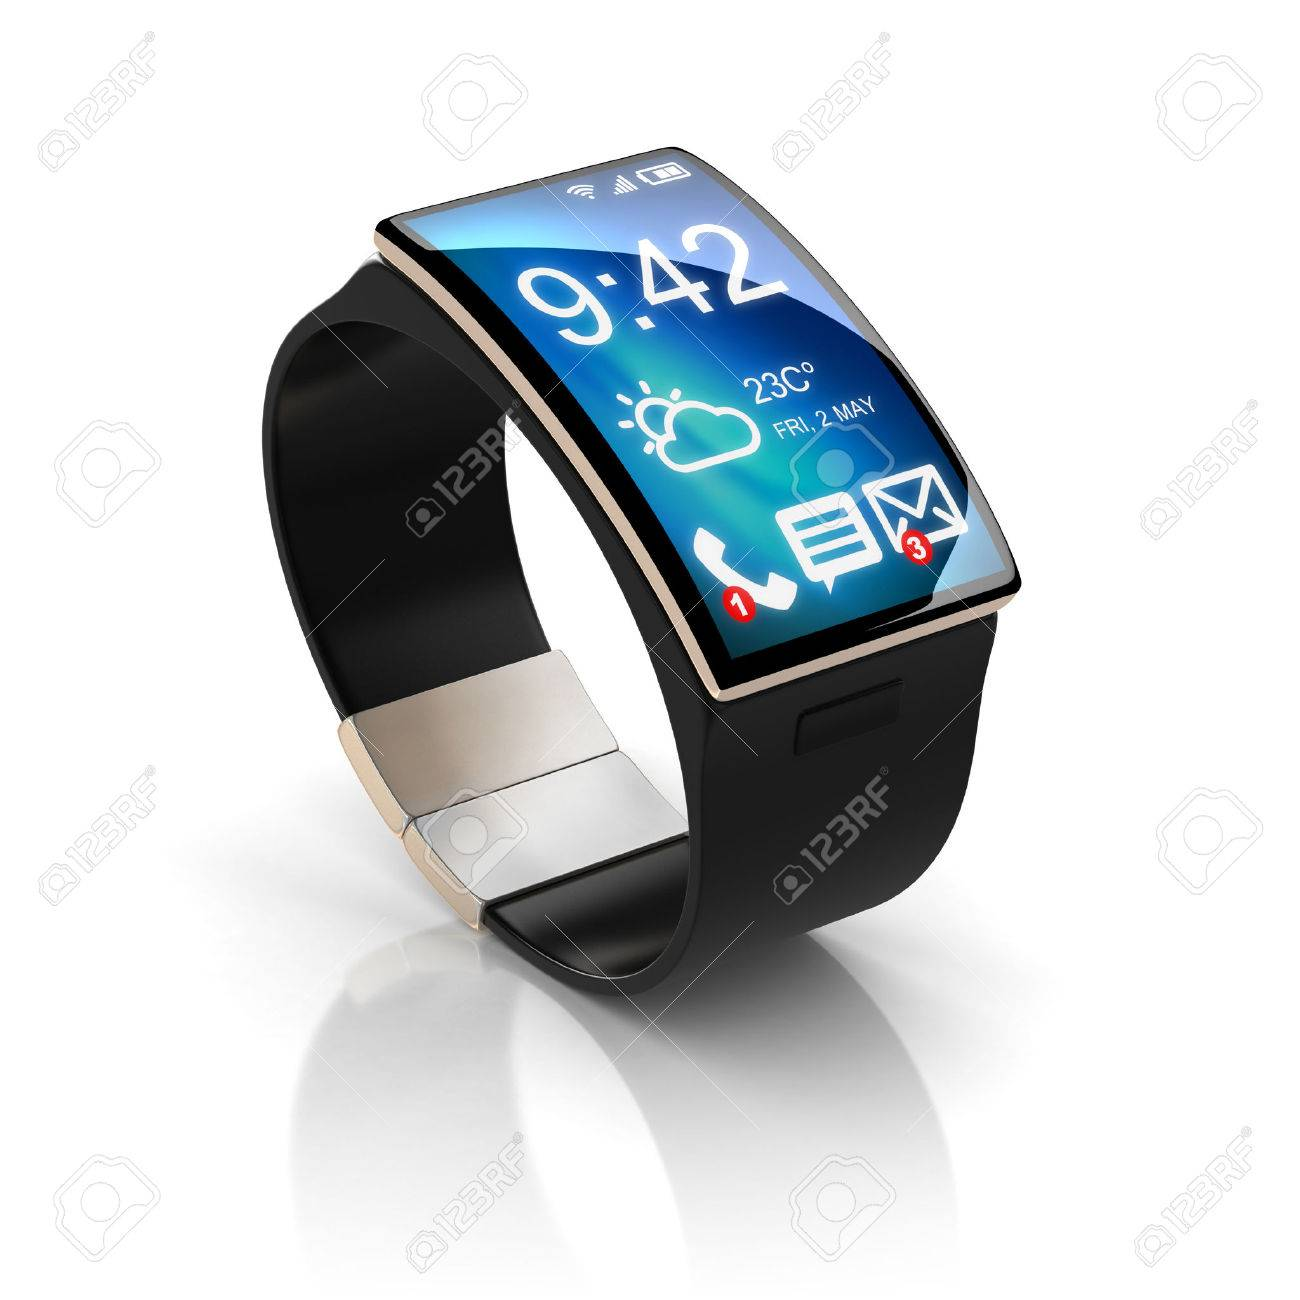 smart watch Stock Photo - 42121442